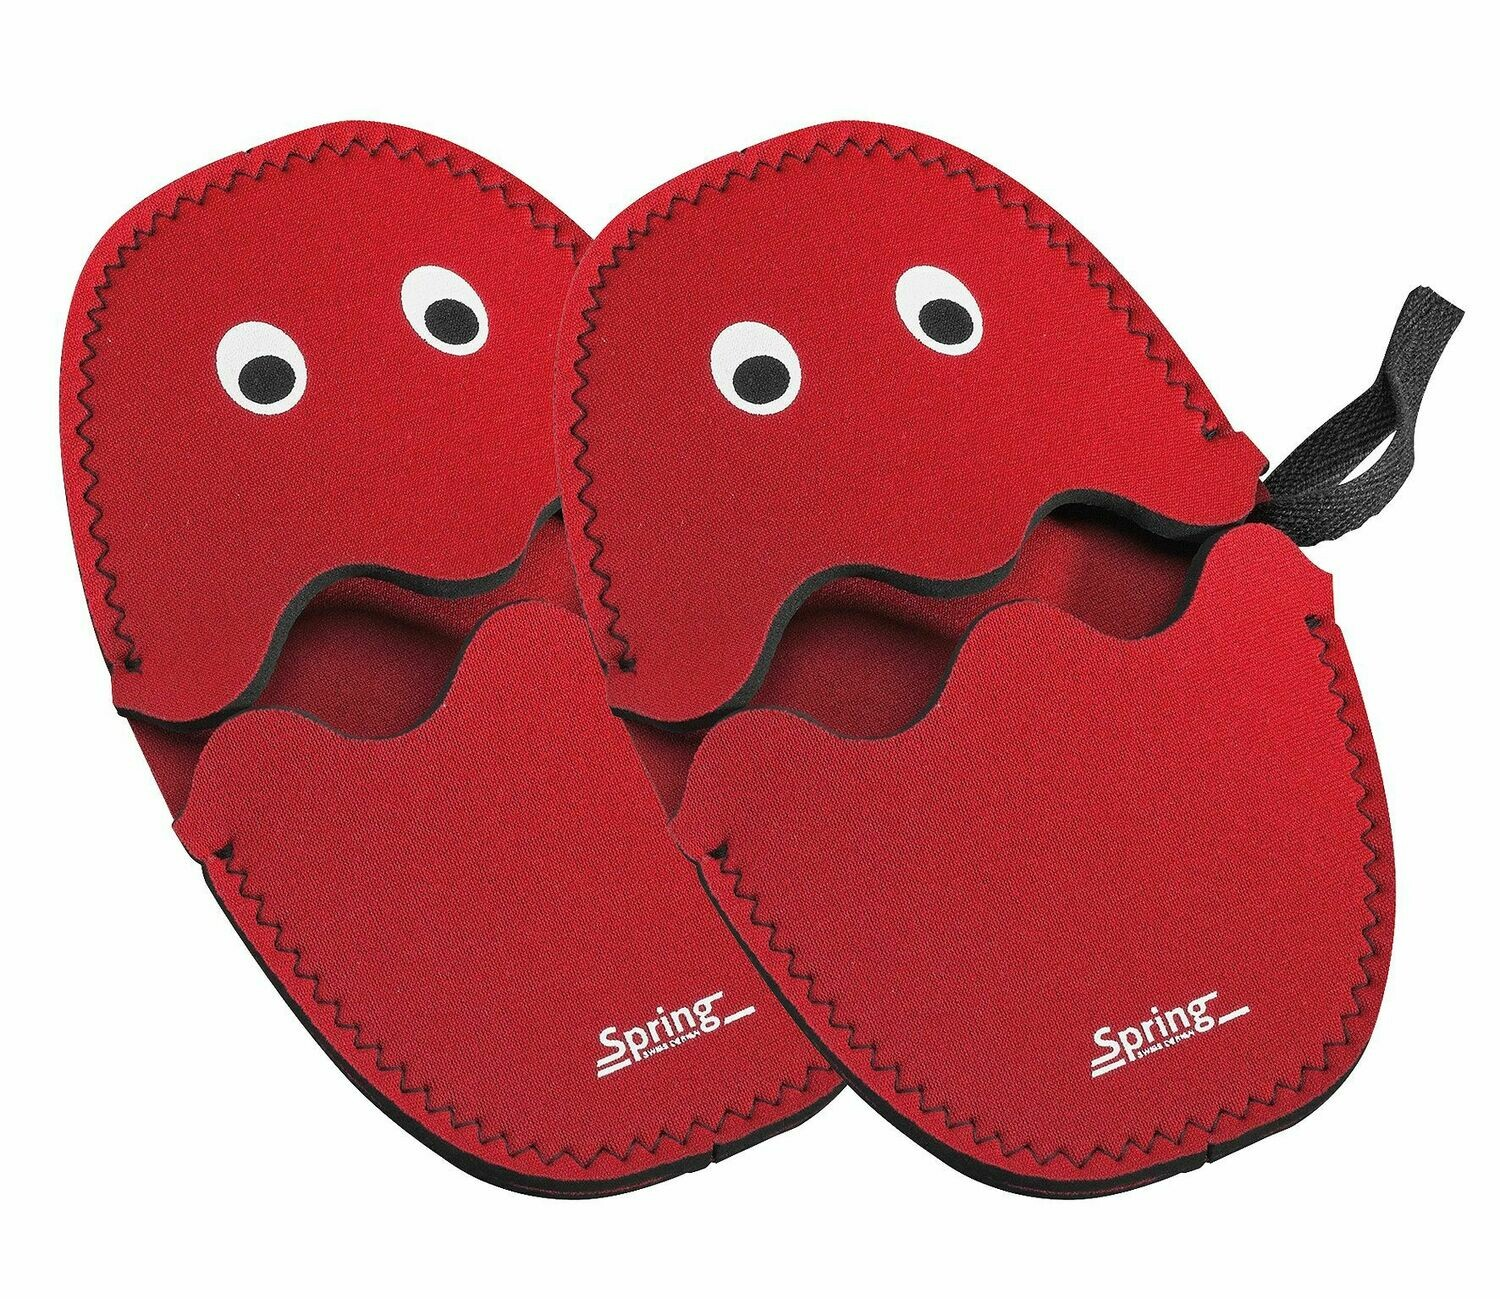 ovengrips set spring ghost red